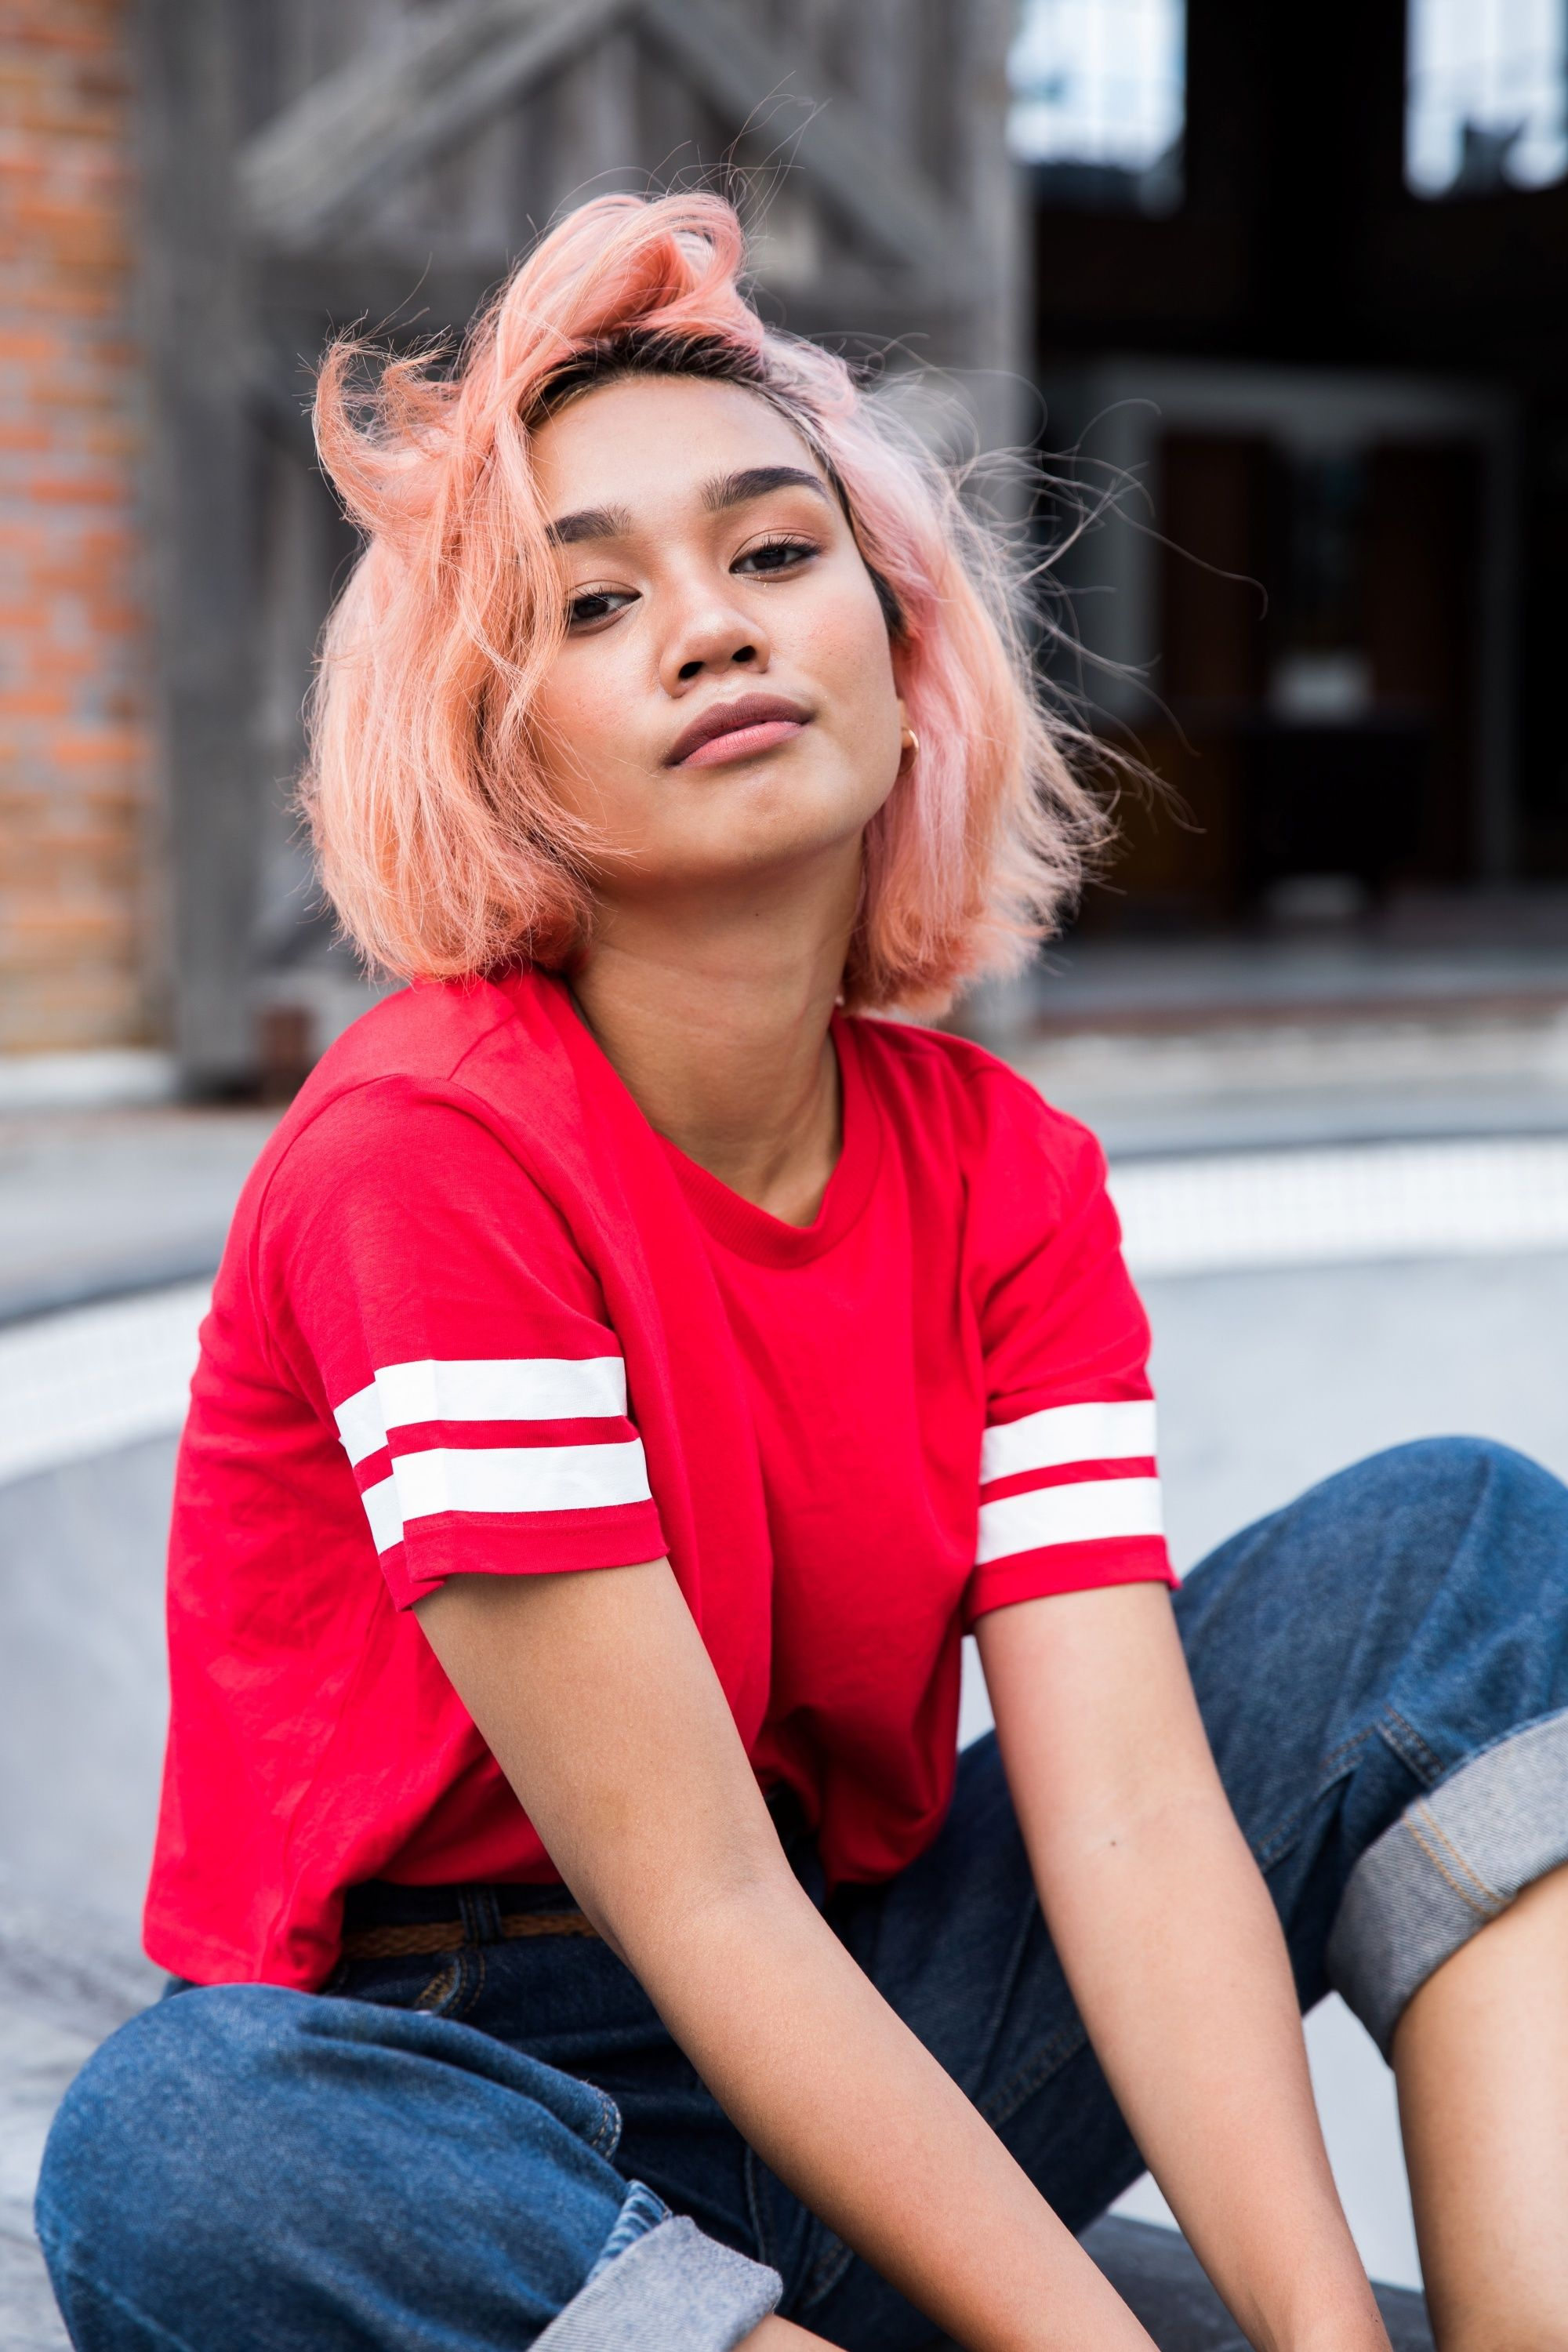 Asian woman with short light coral pink hair wearing a red shirt